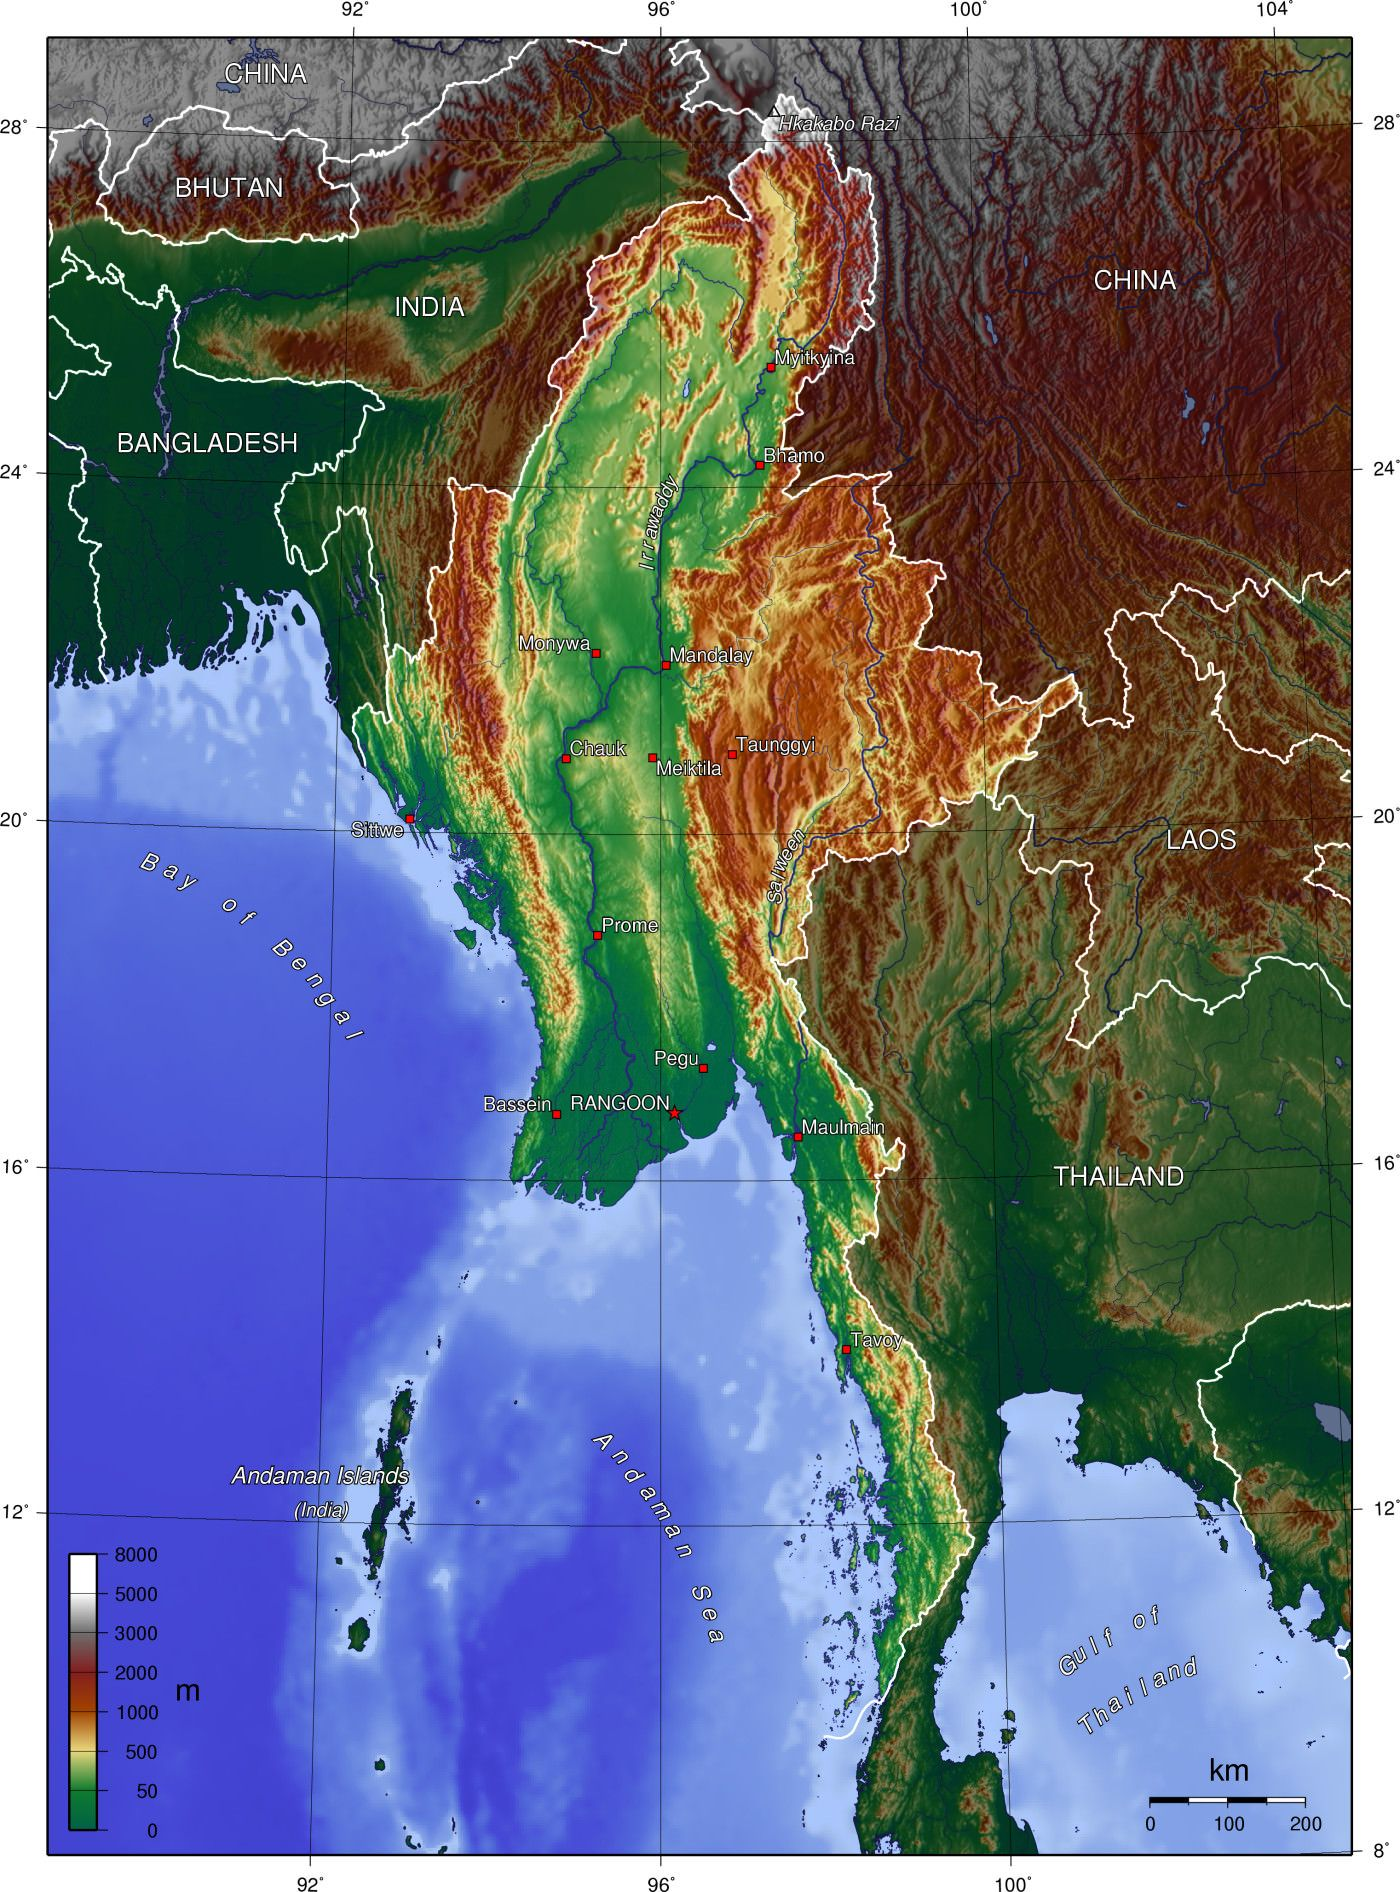 Thailand Topographic Map.Topographic Map Of Myanmar P1 Guatemala Beaches Ecuador Thailand